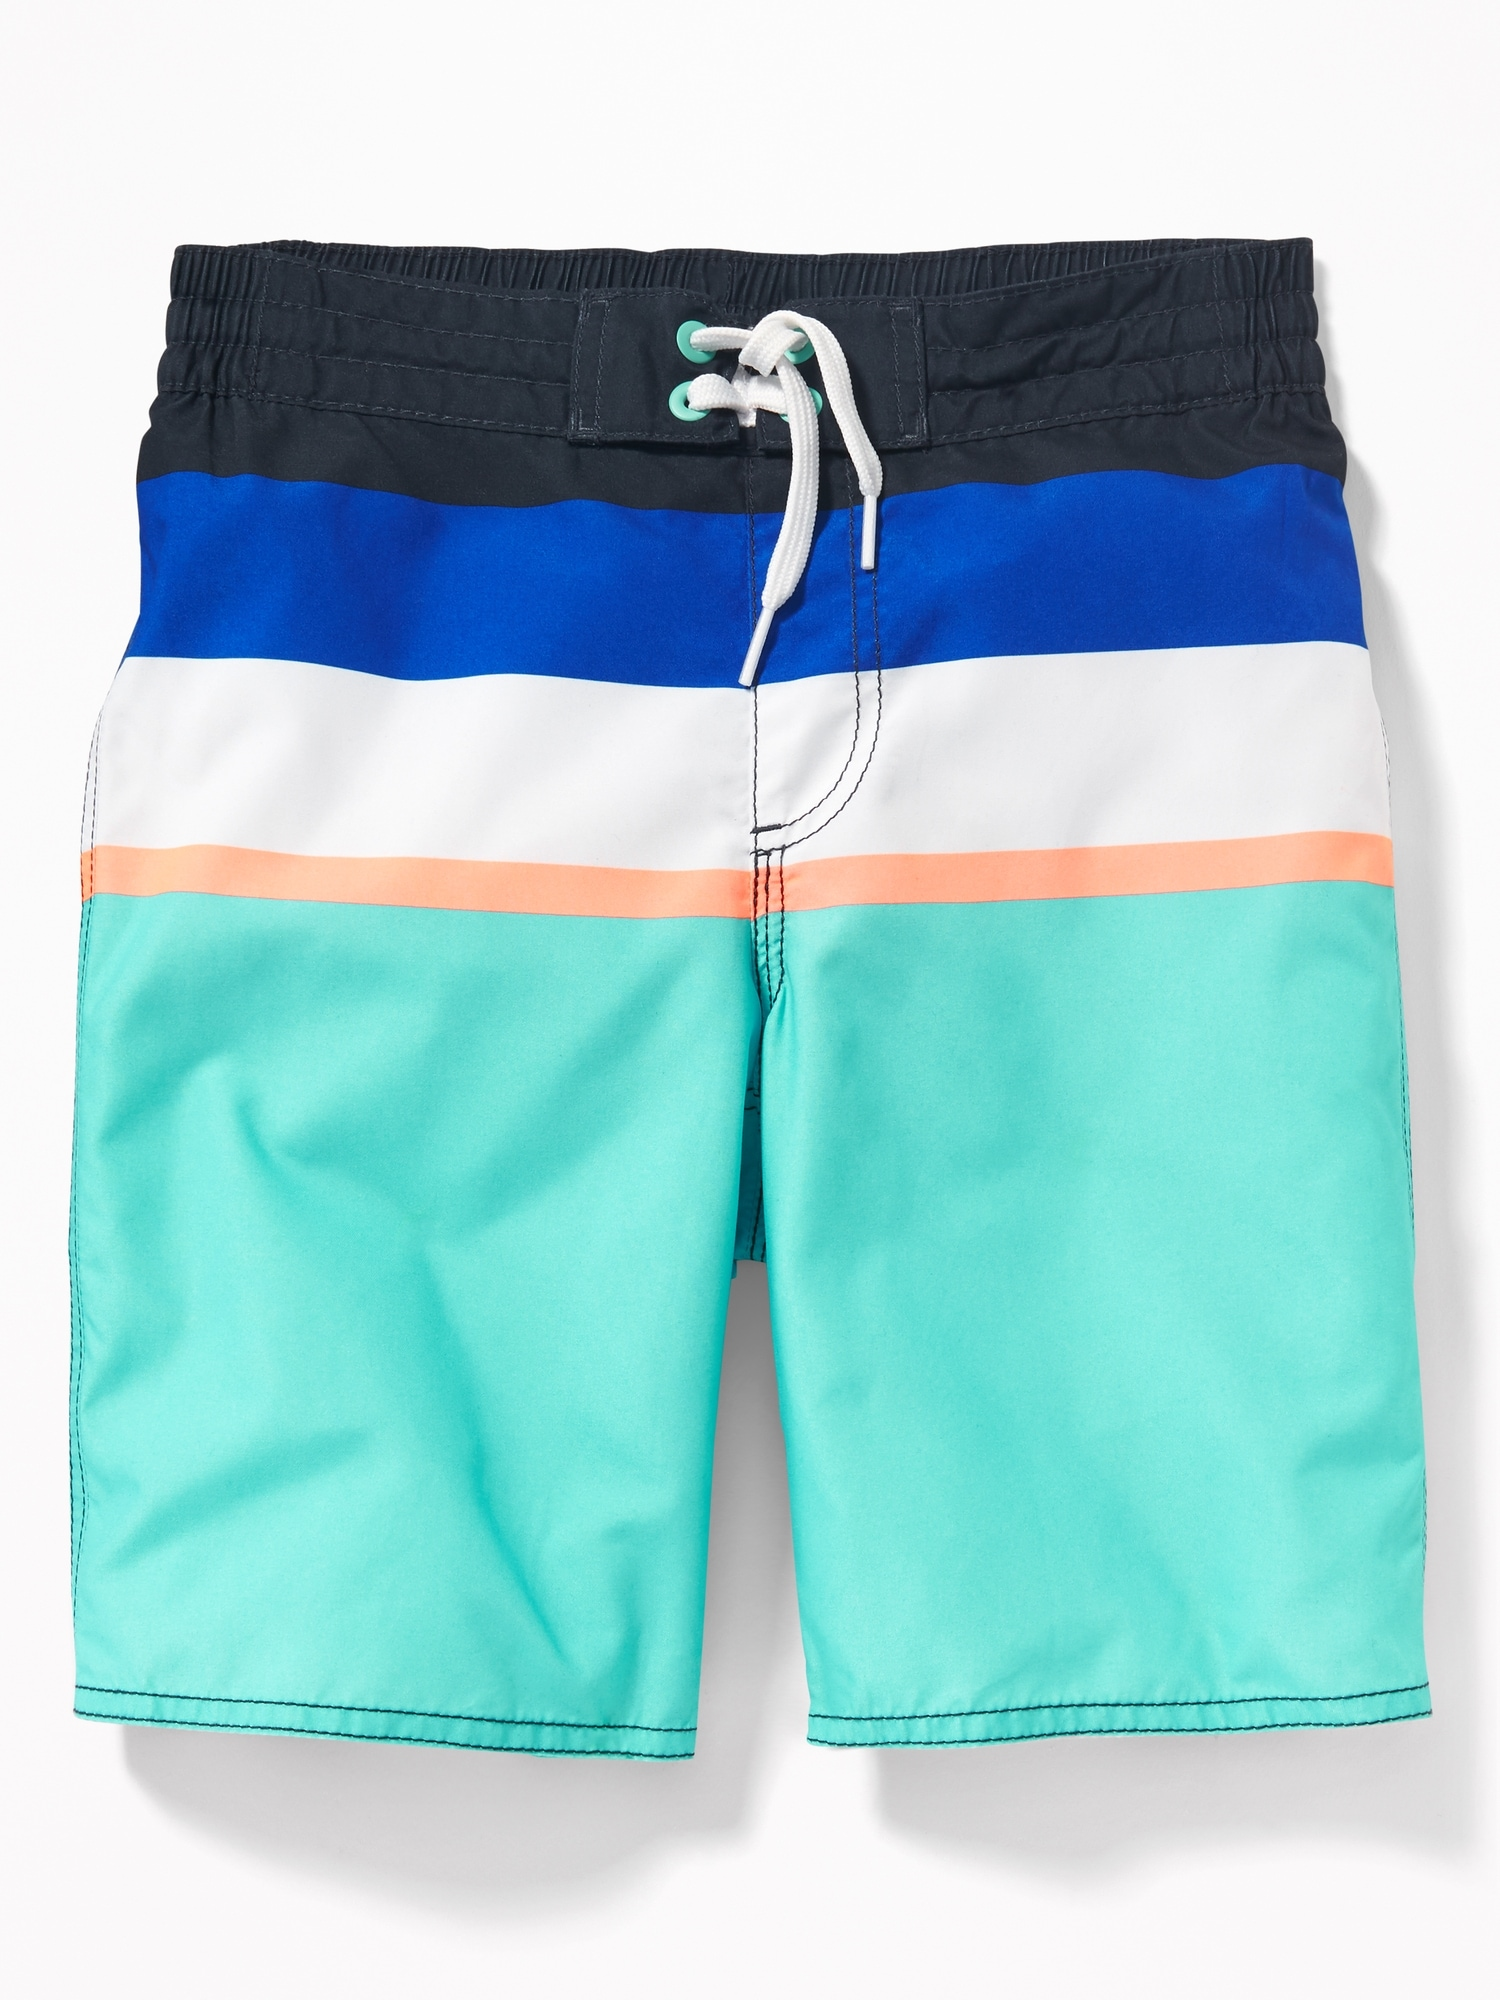 05770a1235 Patterned Board Shorts for Boys   Old Navy